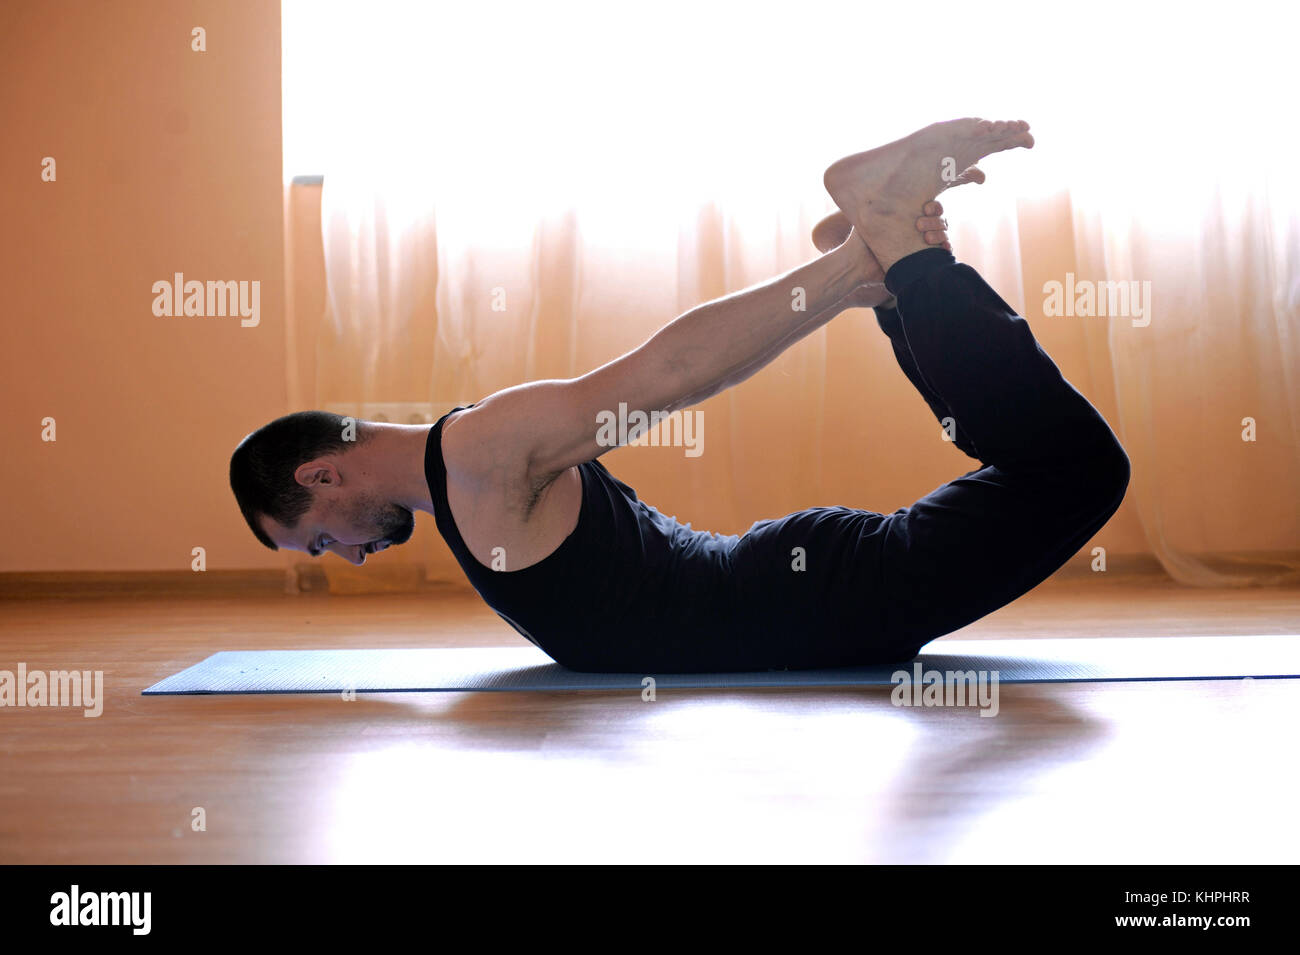 Yoga instructor teaches yoga poses in a studio, demonstration for mass media. May 3, 2016. Dmitriy Goncharenko's - Stock Image